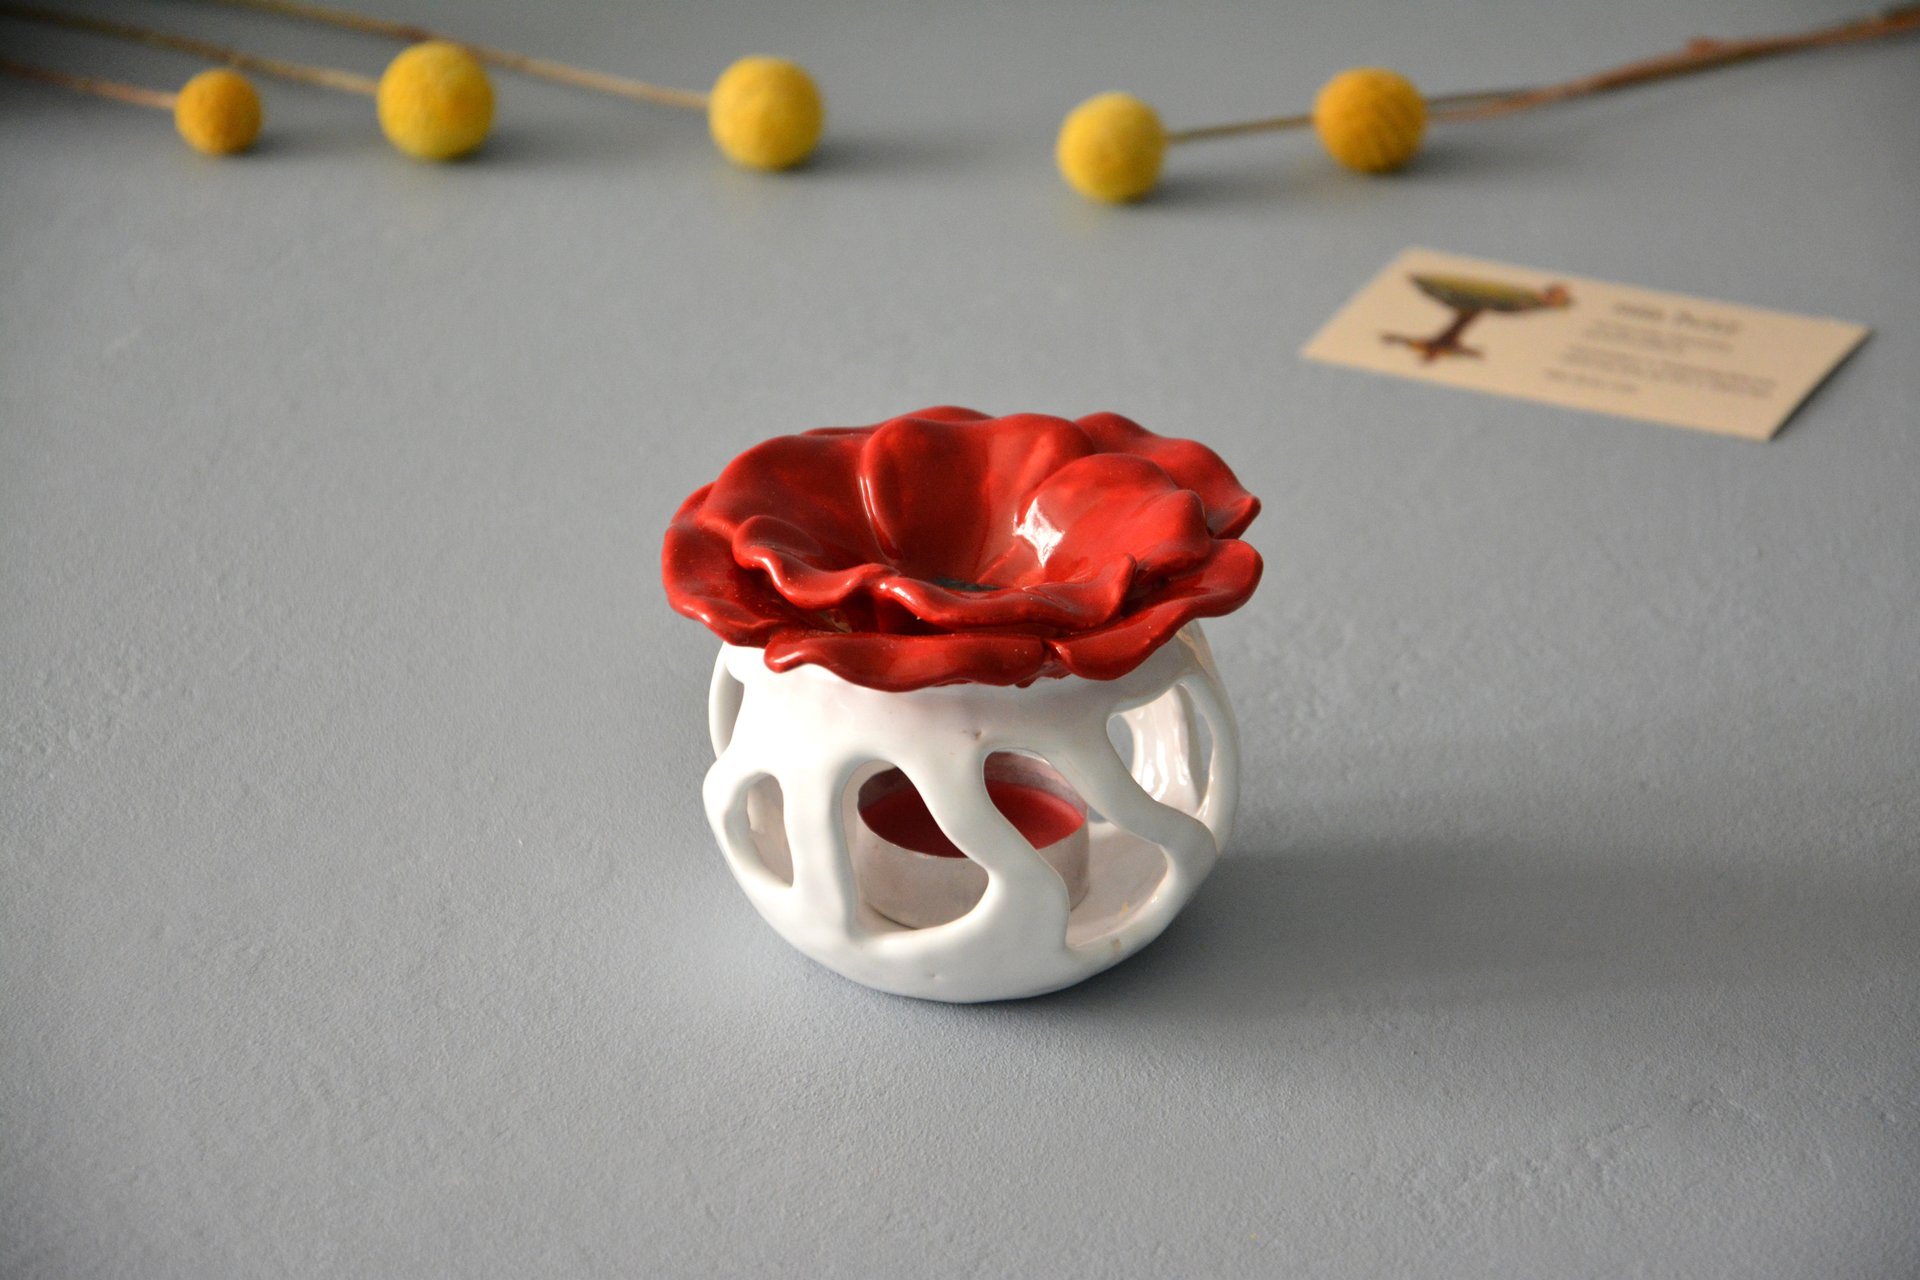 Ceramic Aroma Lamp Poppy, White with Red, color - white with red, height - 8.5 cm, diameter - 9 cm, photo 1 of 5.